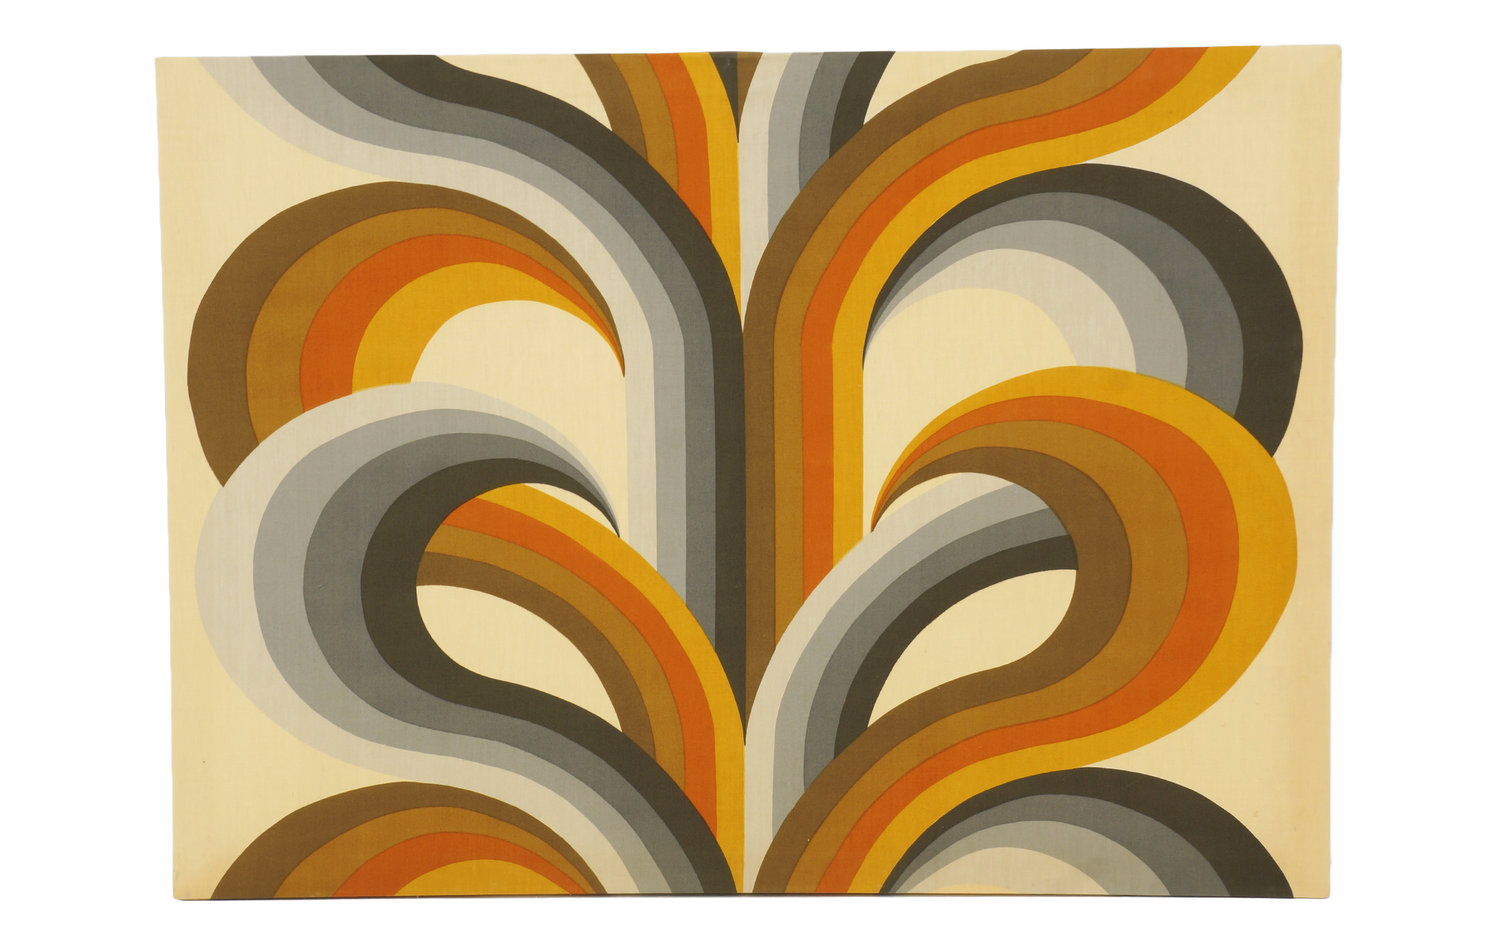 Fabric Art, 1970s Mod Screen Print Stretched Over a Wood Frame ...